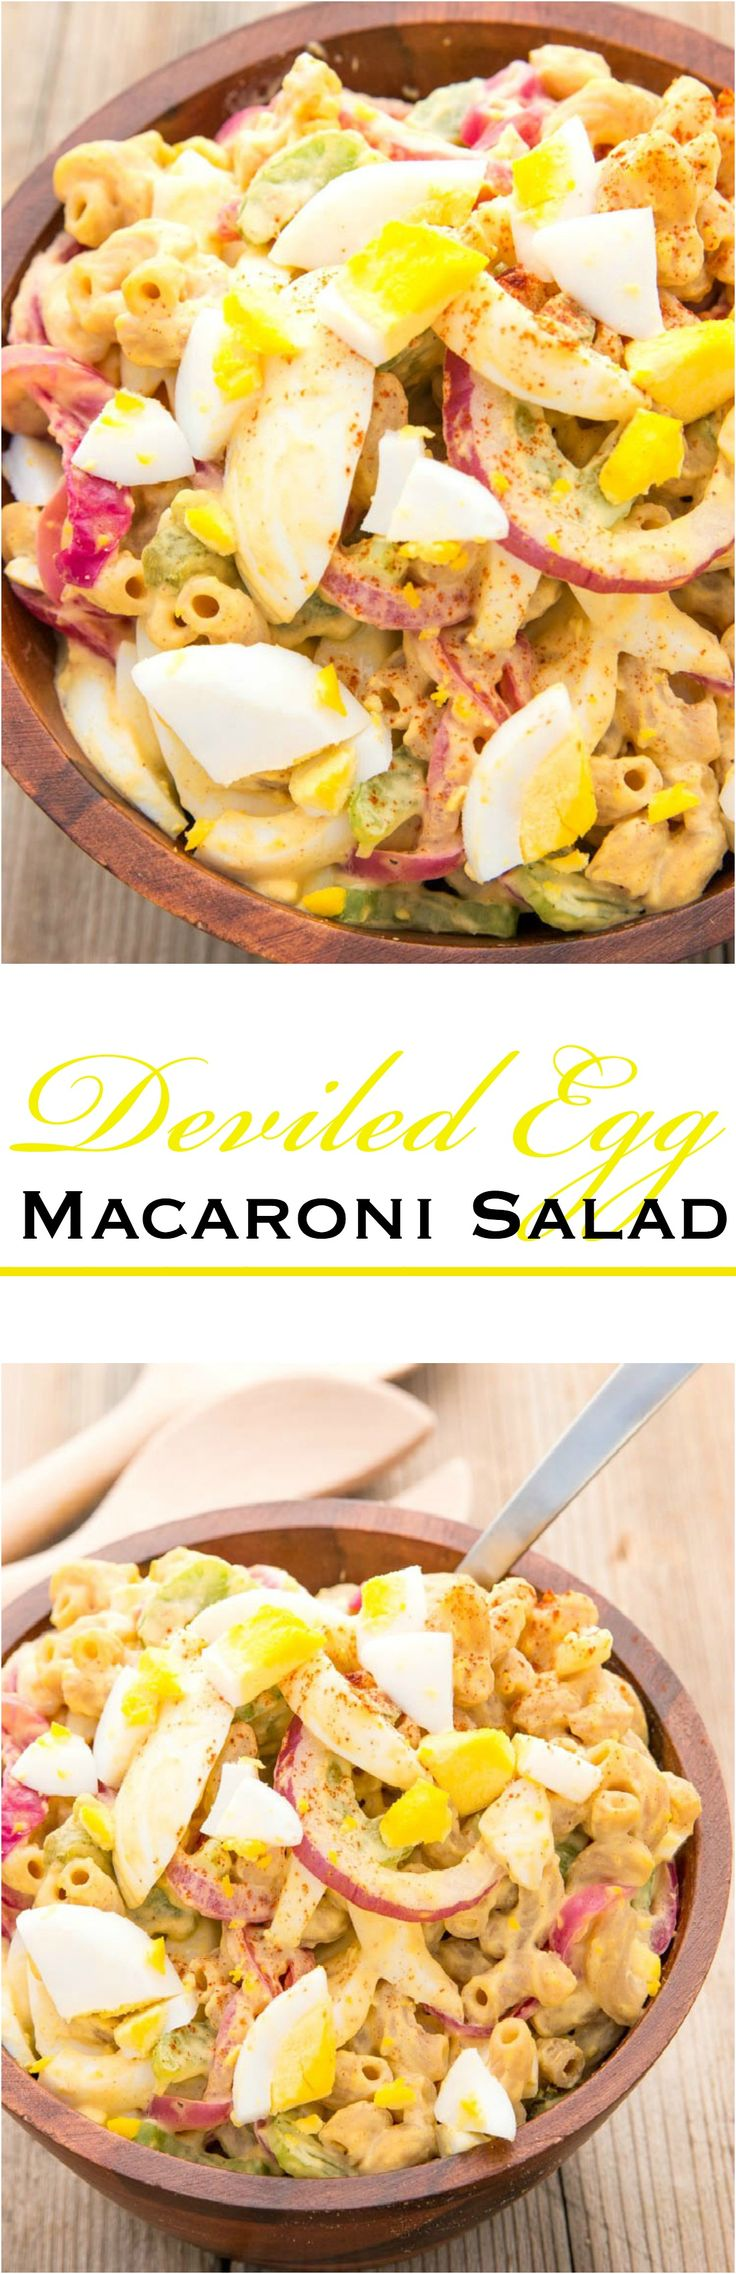 """Don't be fooled by the """"devil,"""" Deviled Egg Macaroni Salad lets you enjoy two yummy foods in one."""